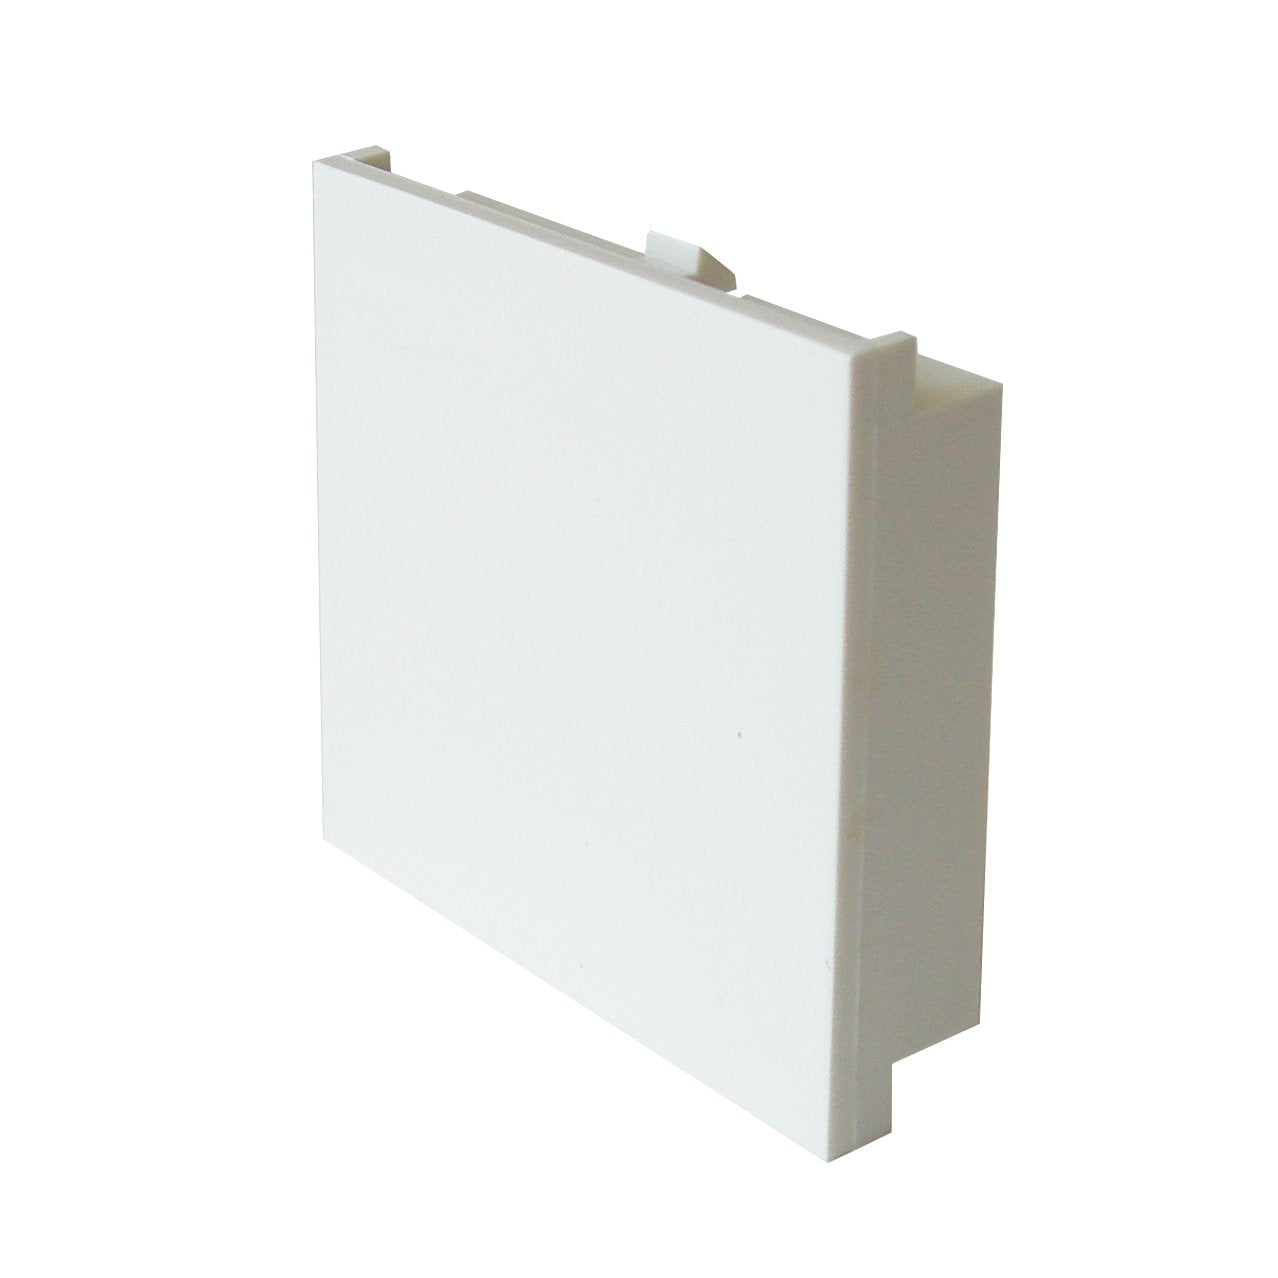 50mm x 50mm  Single Gang Blank for Face Plate - White